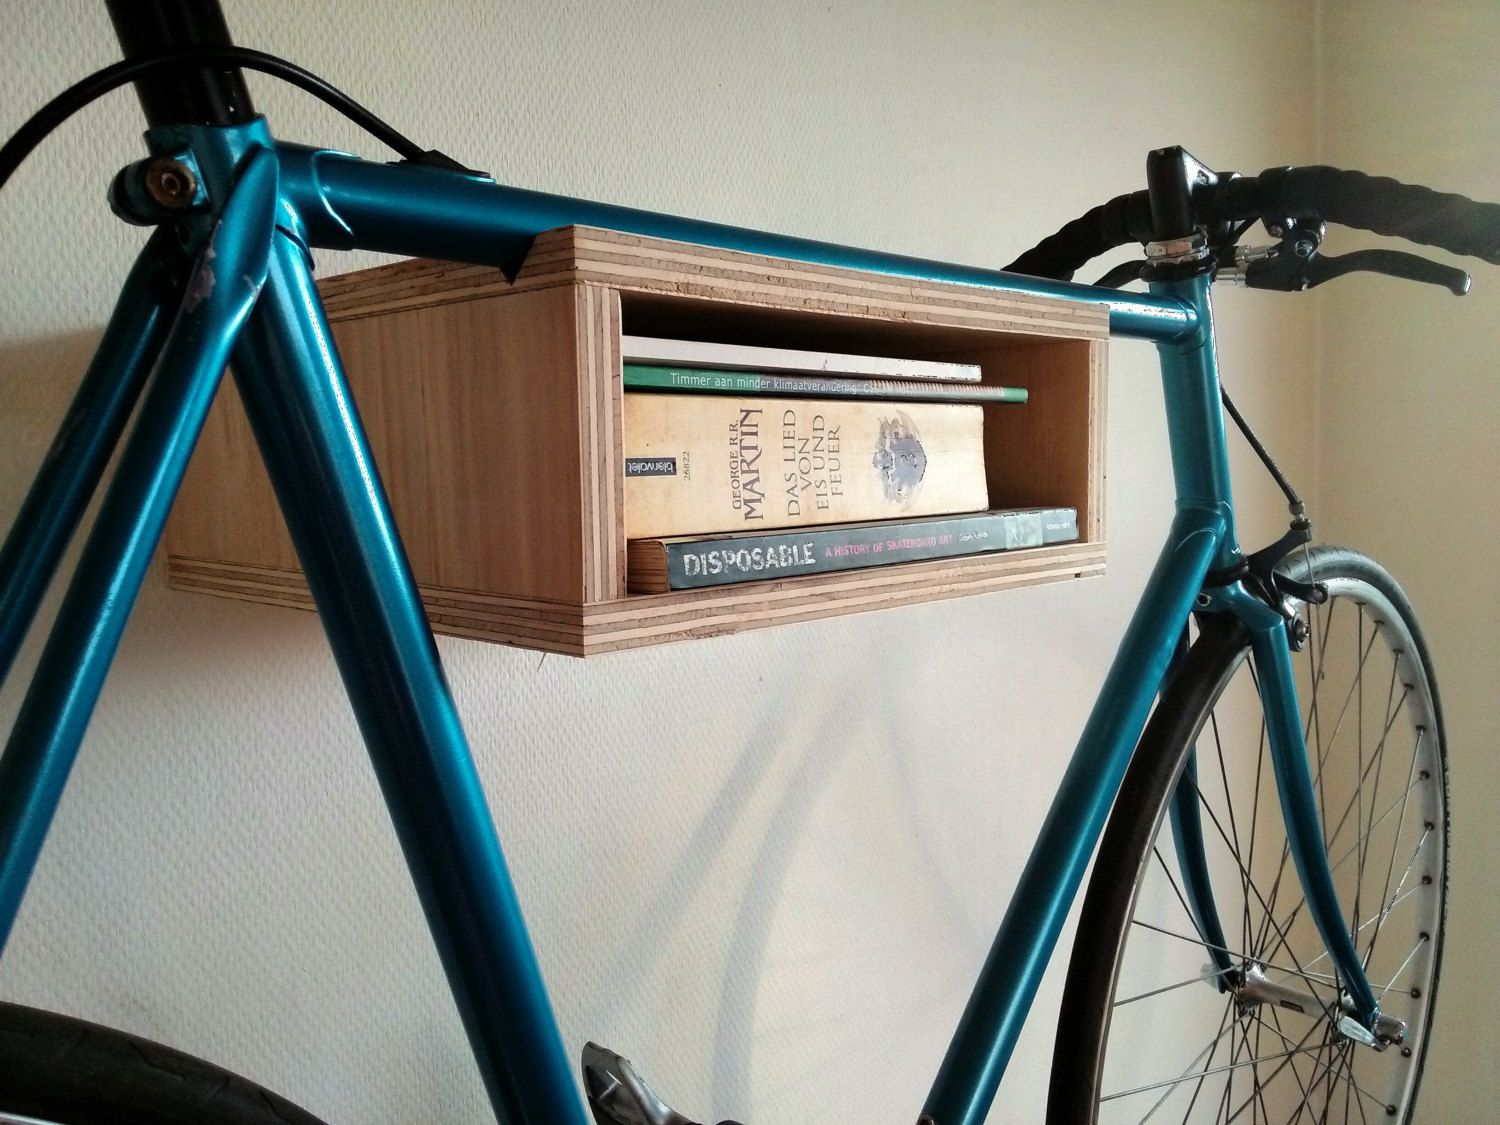 basic wooden bike rack small bike storage cabinet wall mounted bike display bookshelf. Black Bedroom Furniture Sets. Home Design Ideas